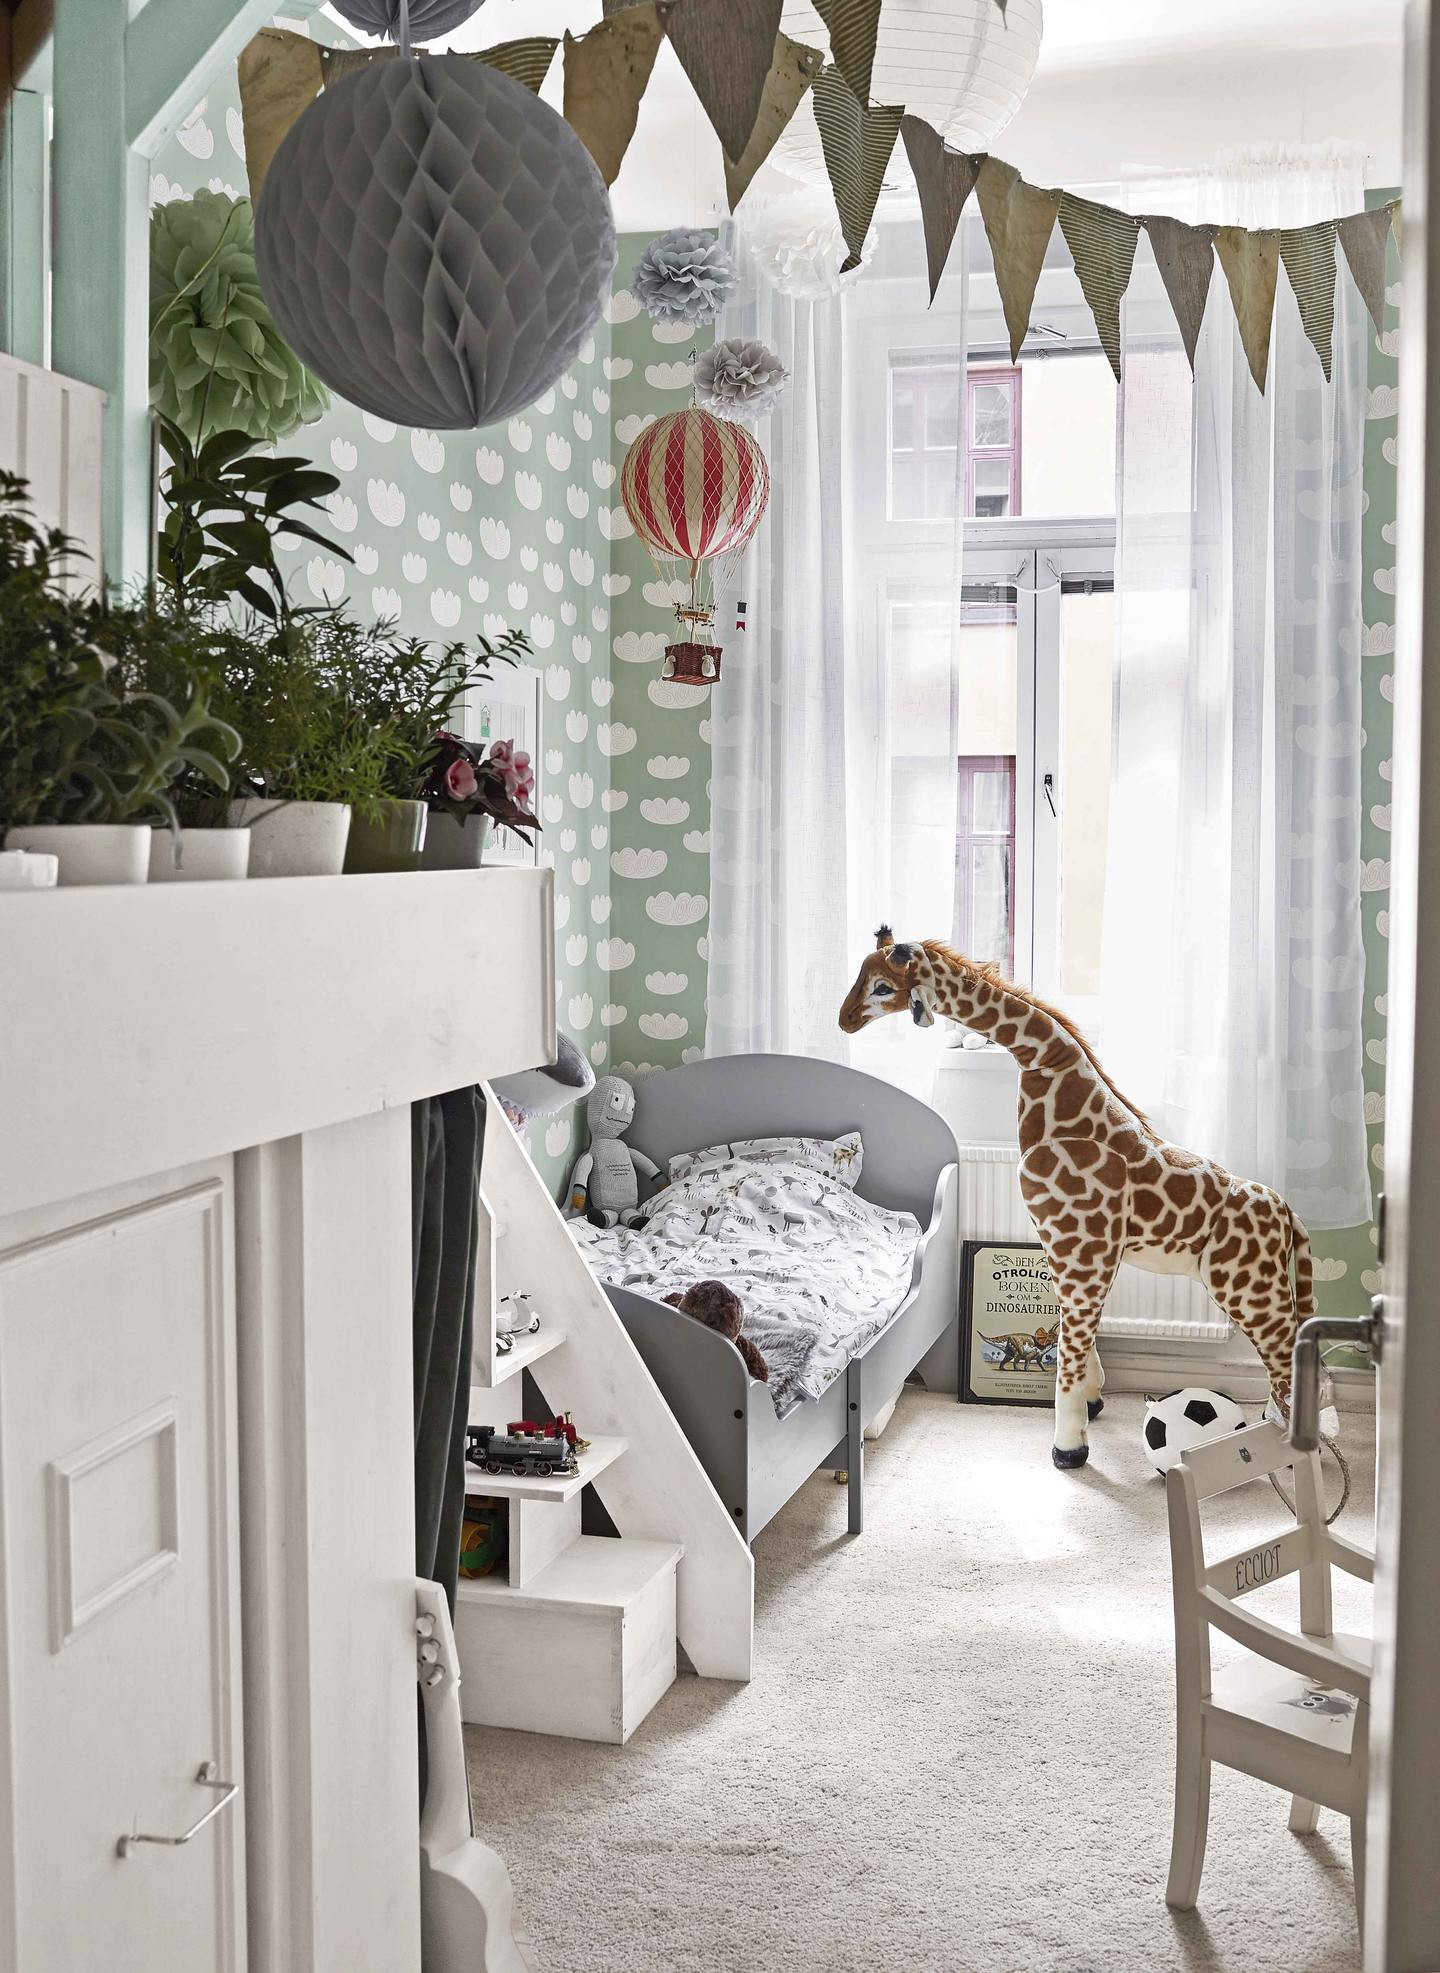 Swedish dream home with a chalet in the children's room